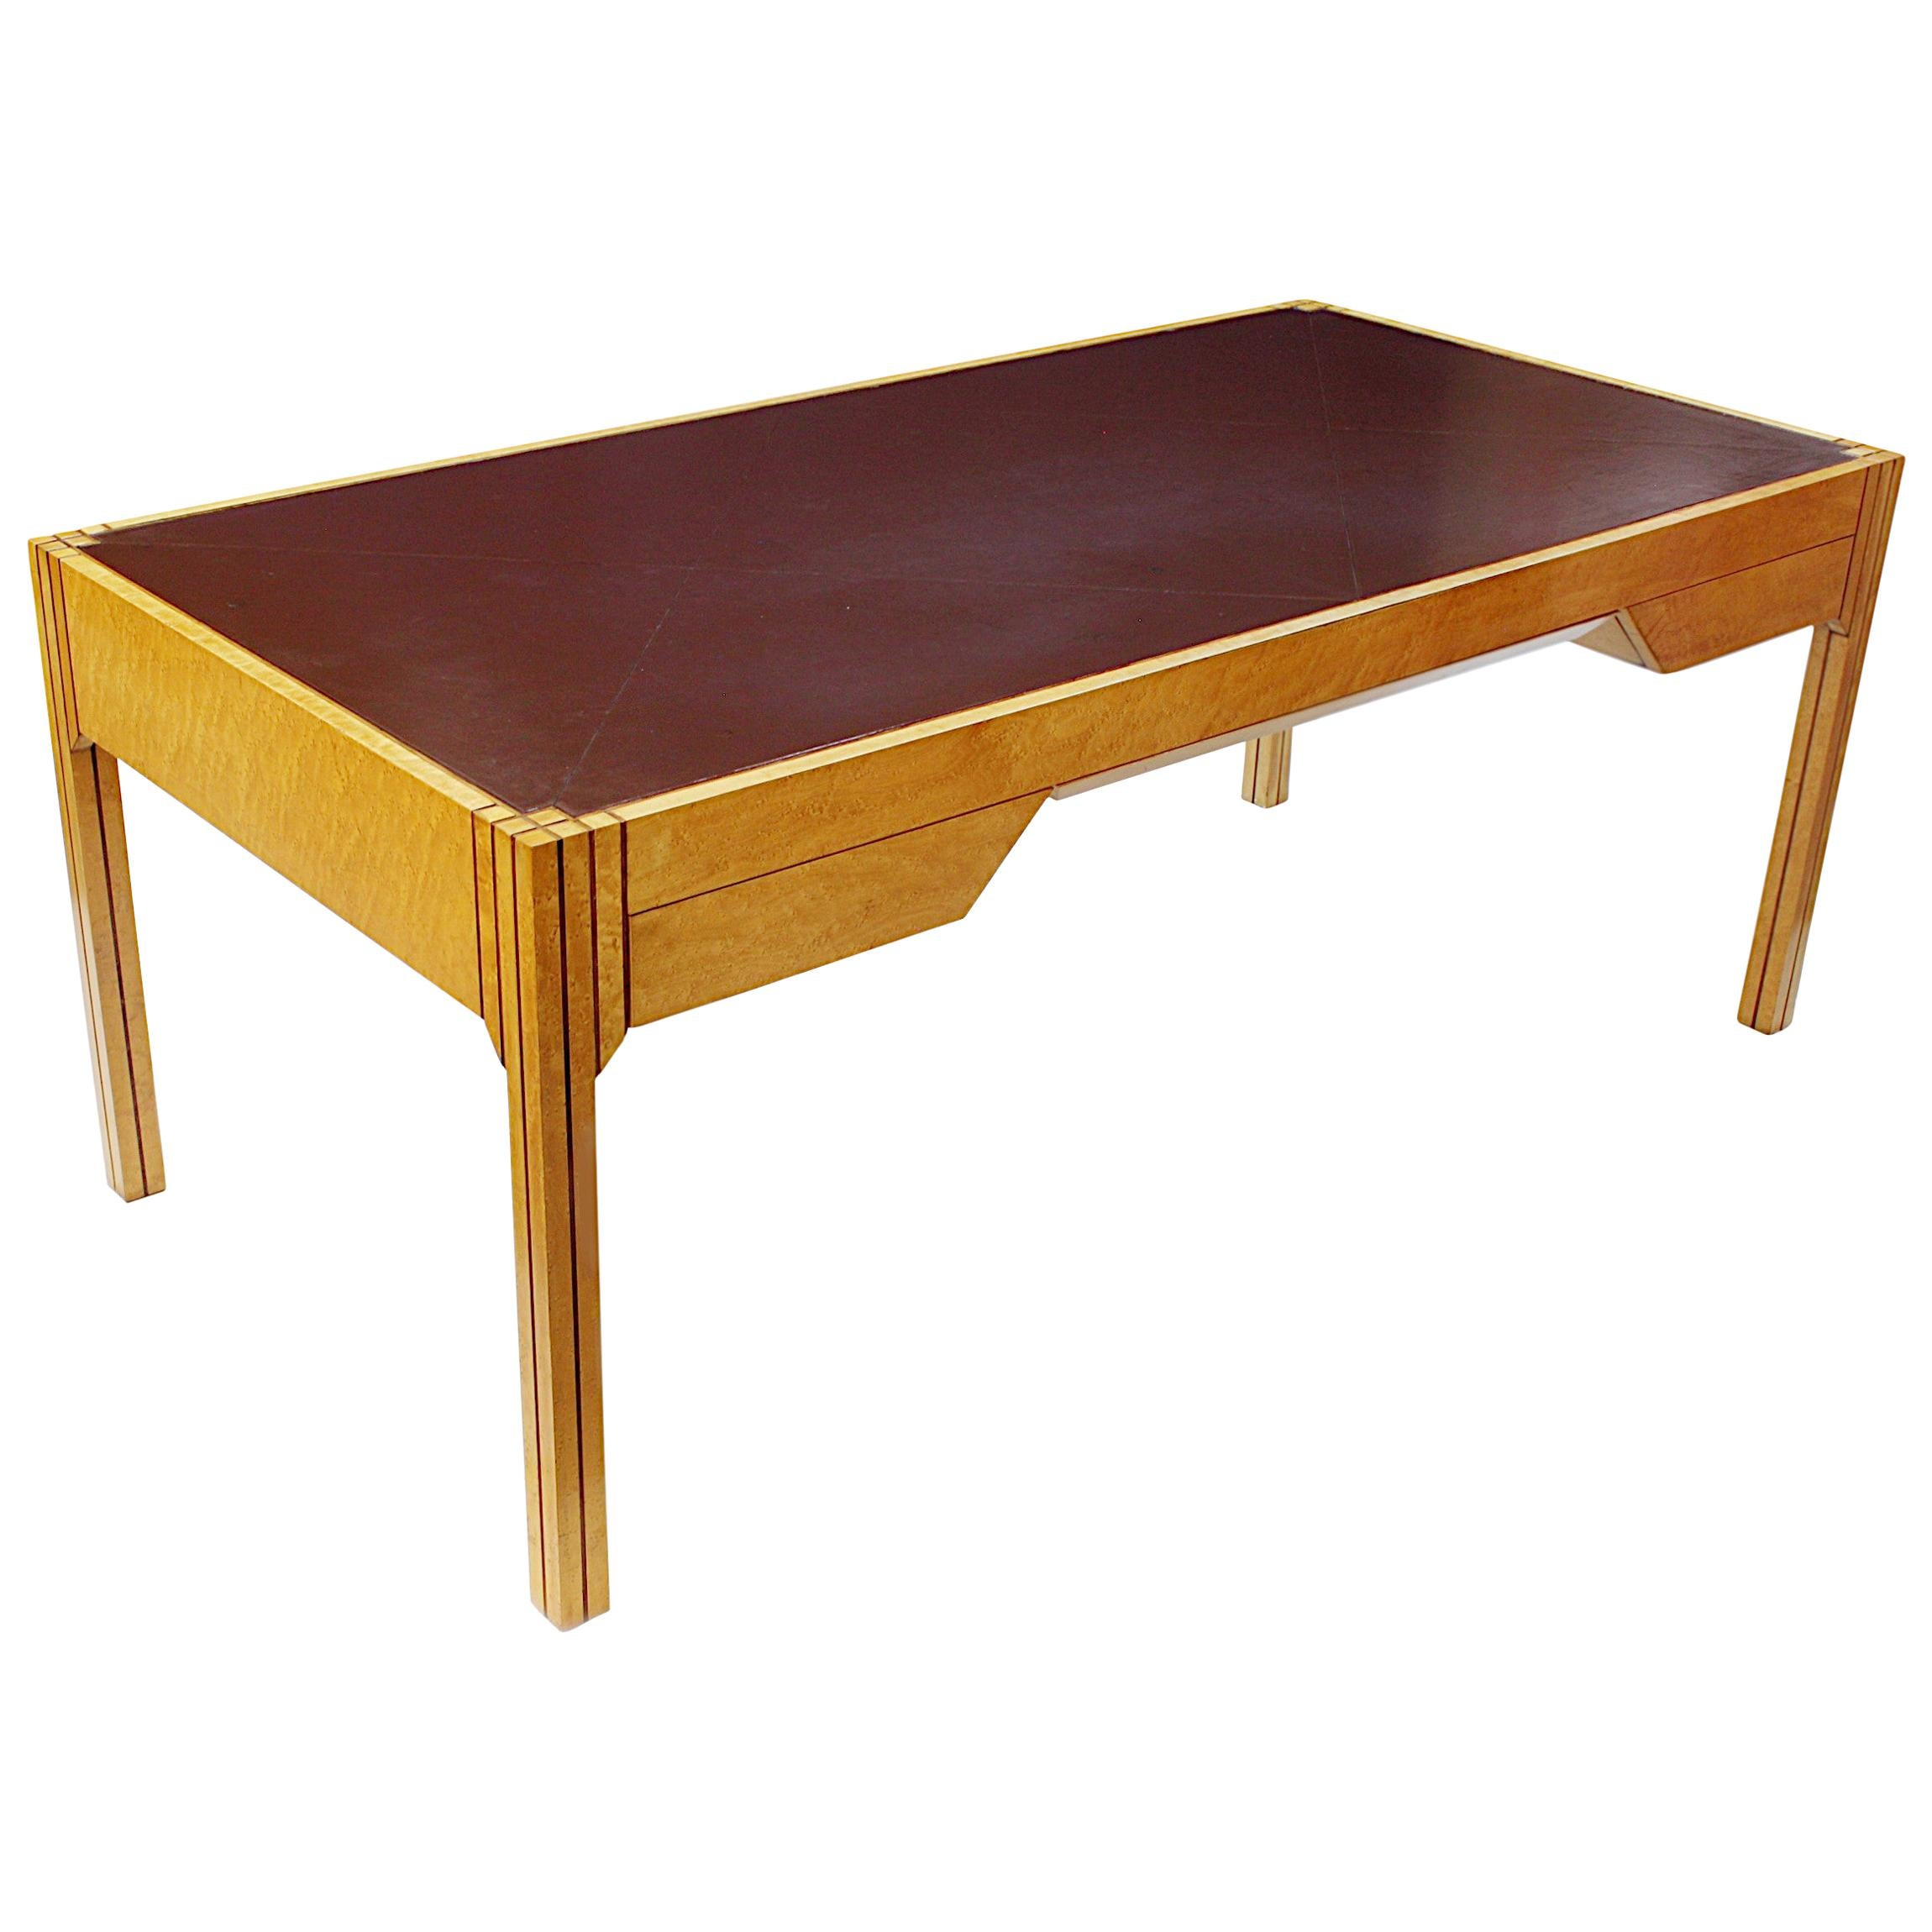 Rare 1980s Mid Century Art Deco Executive Table Desk by Pierre Paulin for Baker